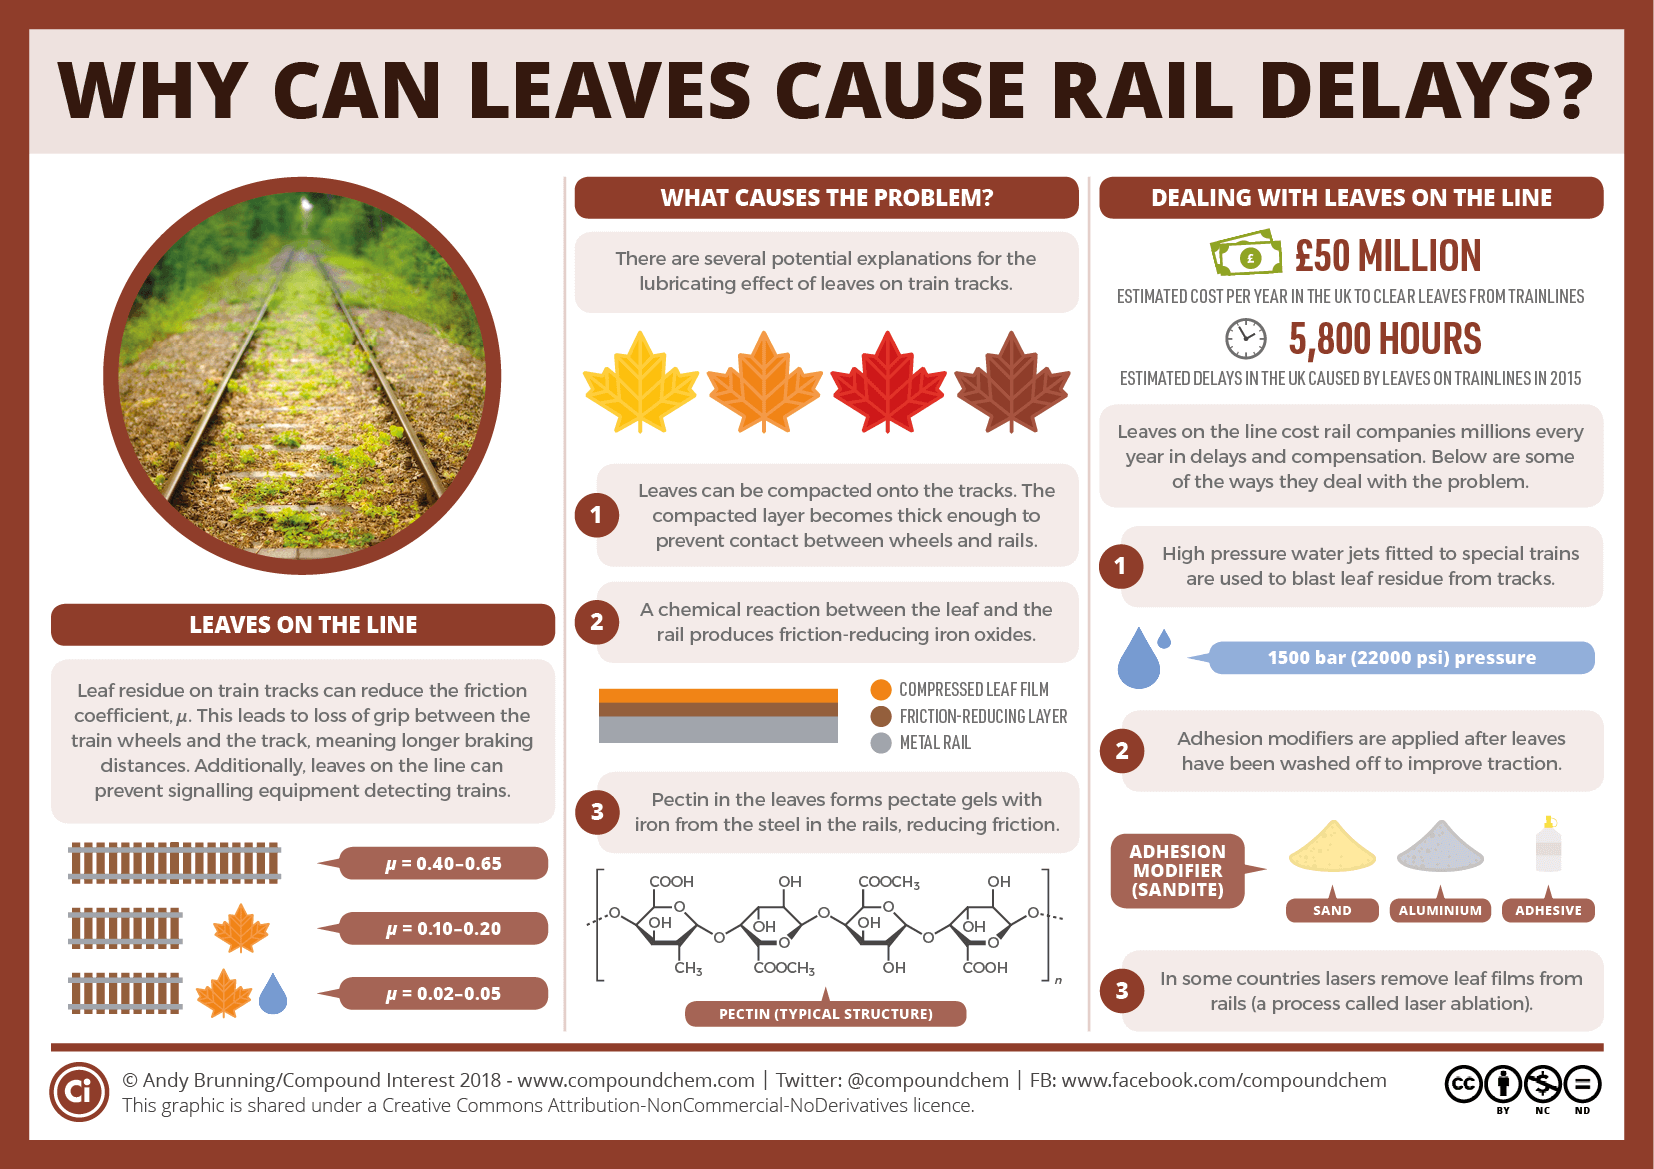 Why can leaves cause train delays? The chemistry of leaves on the line